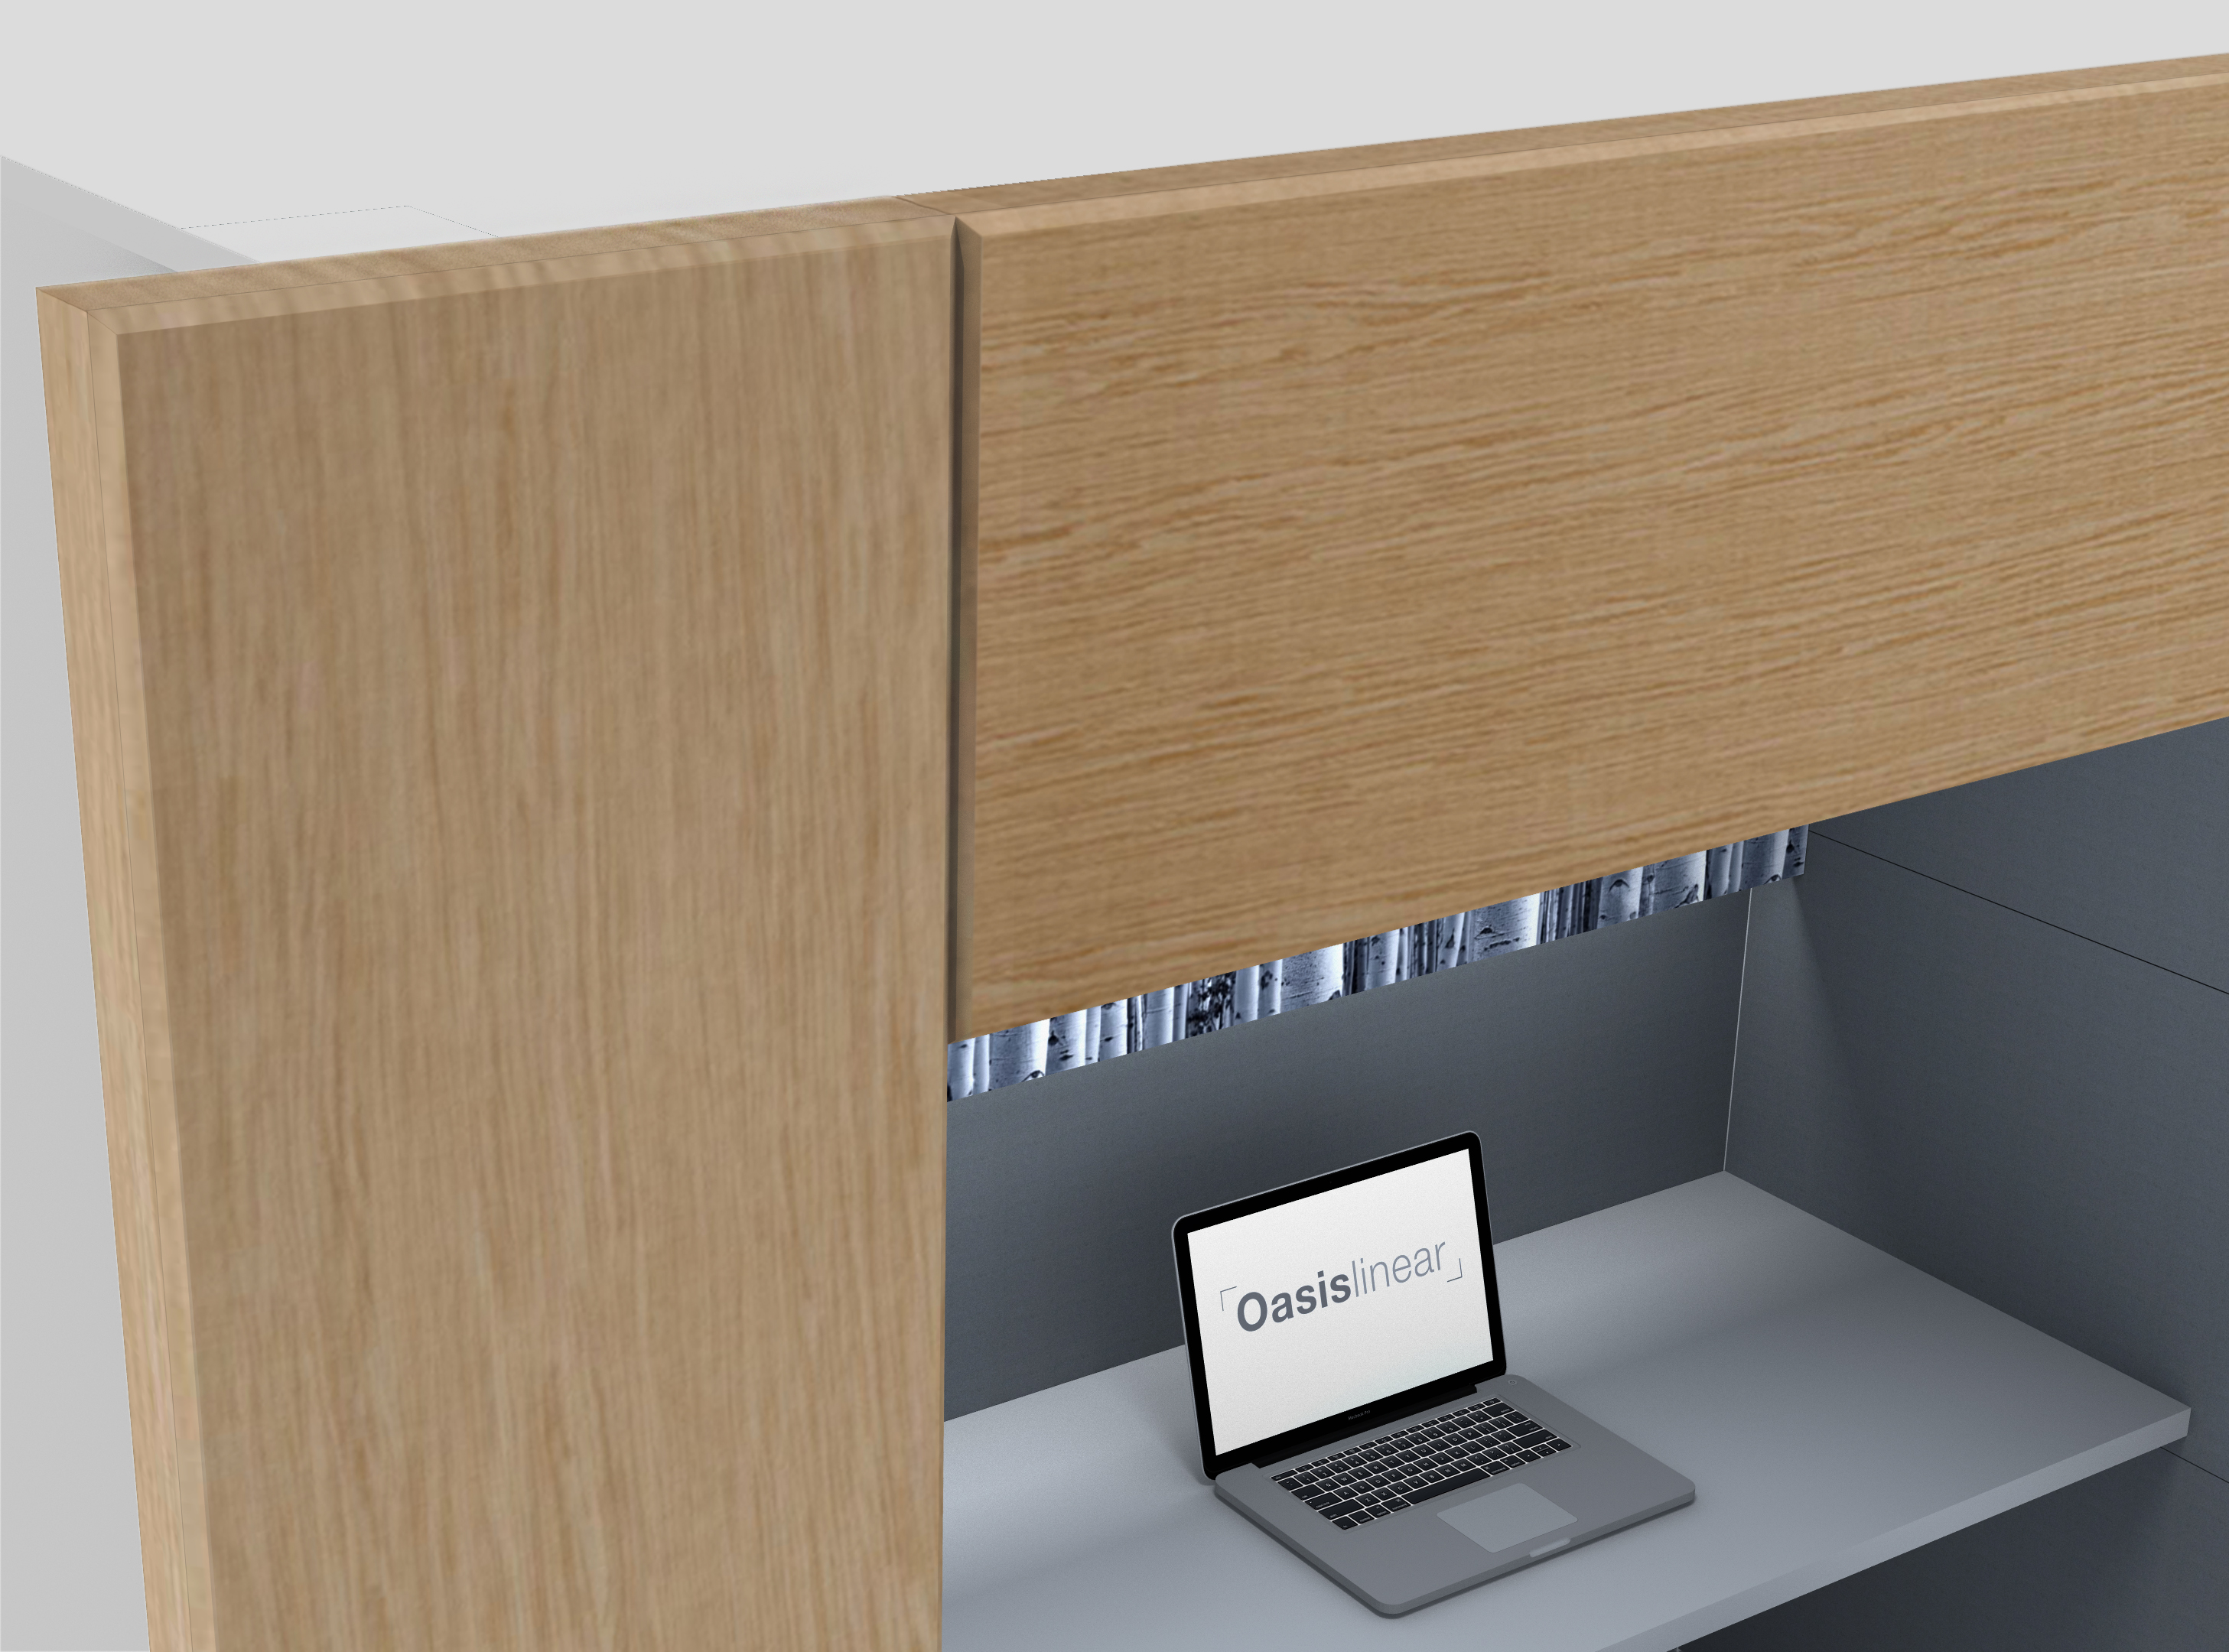 Oasis Linear Team Booth Timber Detail 2